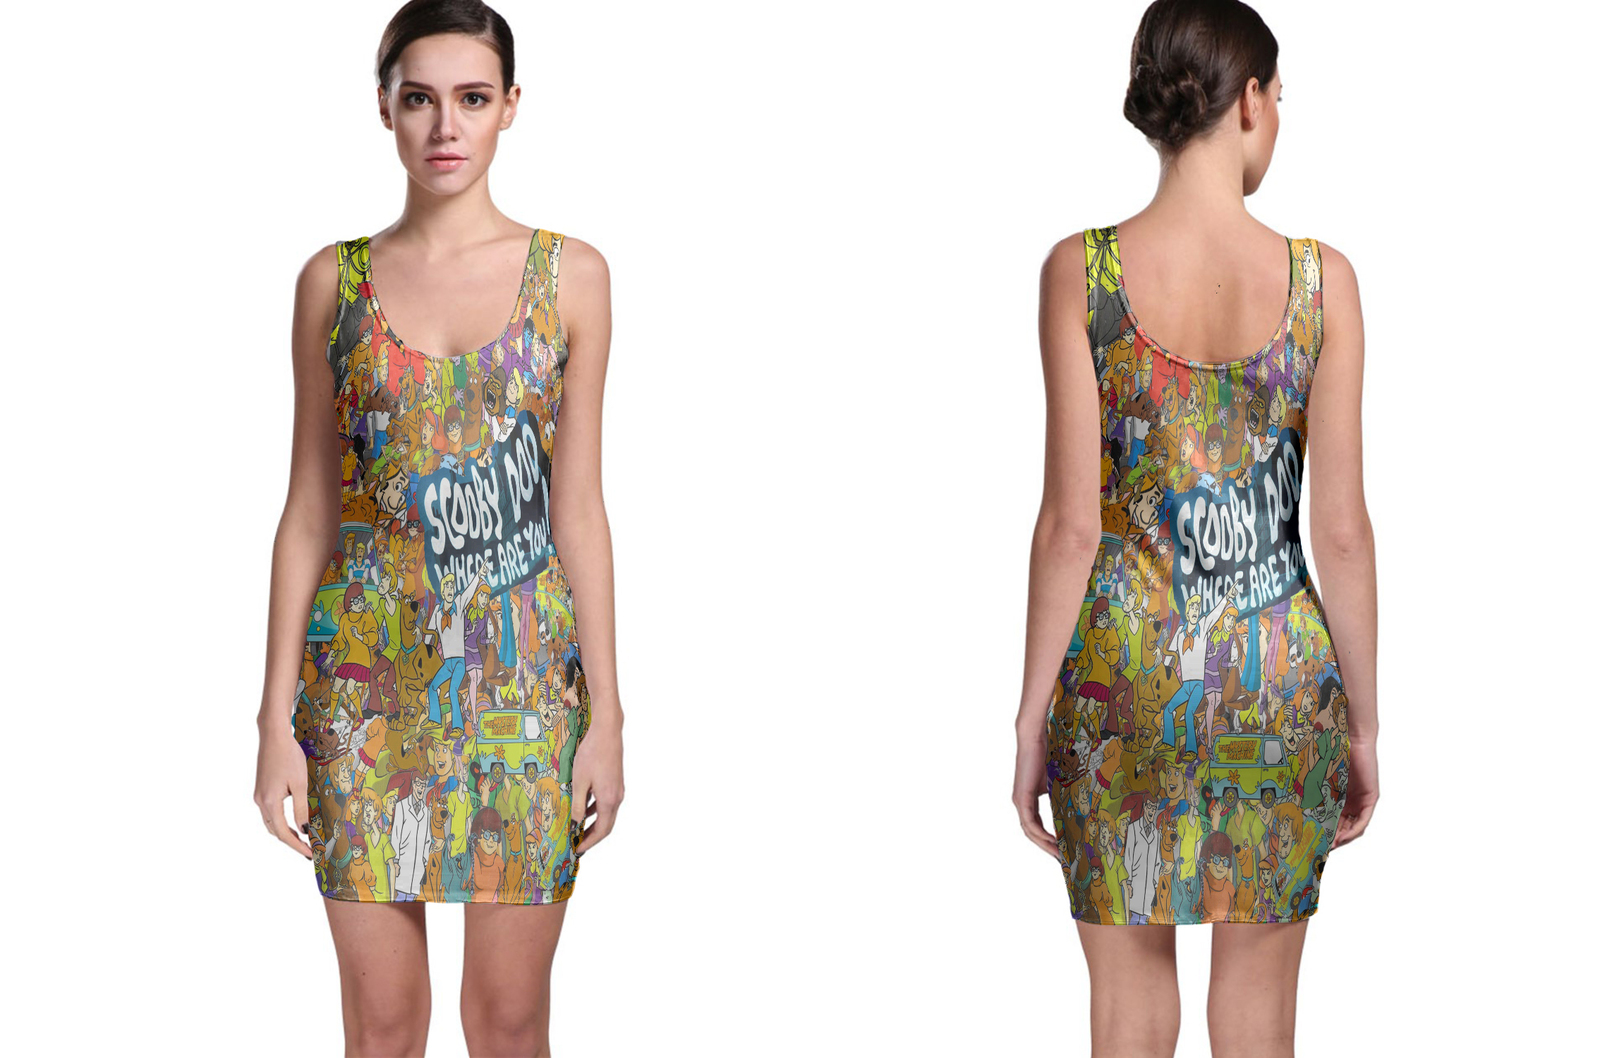 Bodycon Dress scooby doo collage